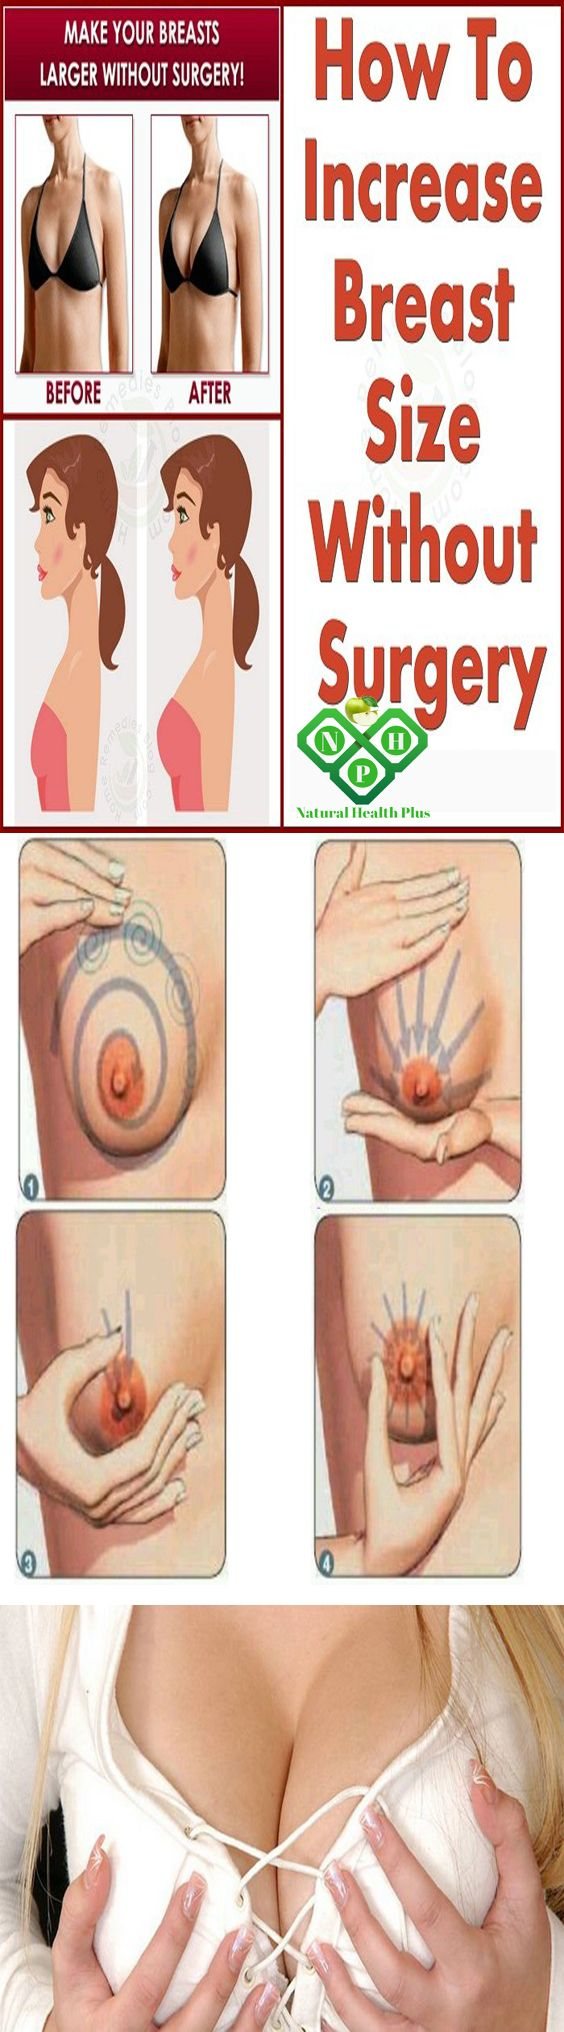 how to increase breast size with food, how to increase breast size by massage, how to increase breast size fast, how to increase breast size by exercise, breast size increase after marriage videos, how to increase breast size video, how to increase bust size in 1 week, how to increase breast size naturally at home,